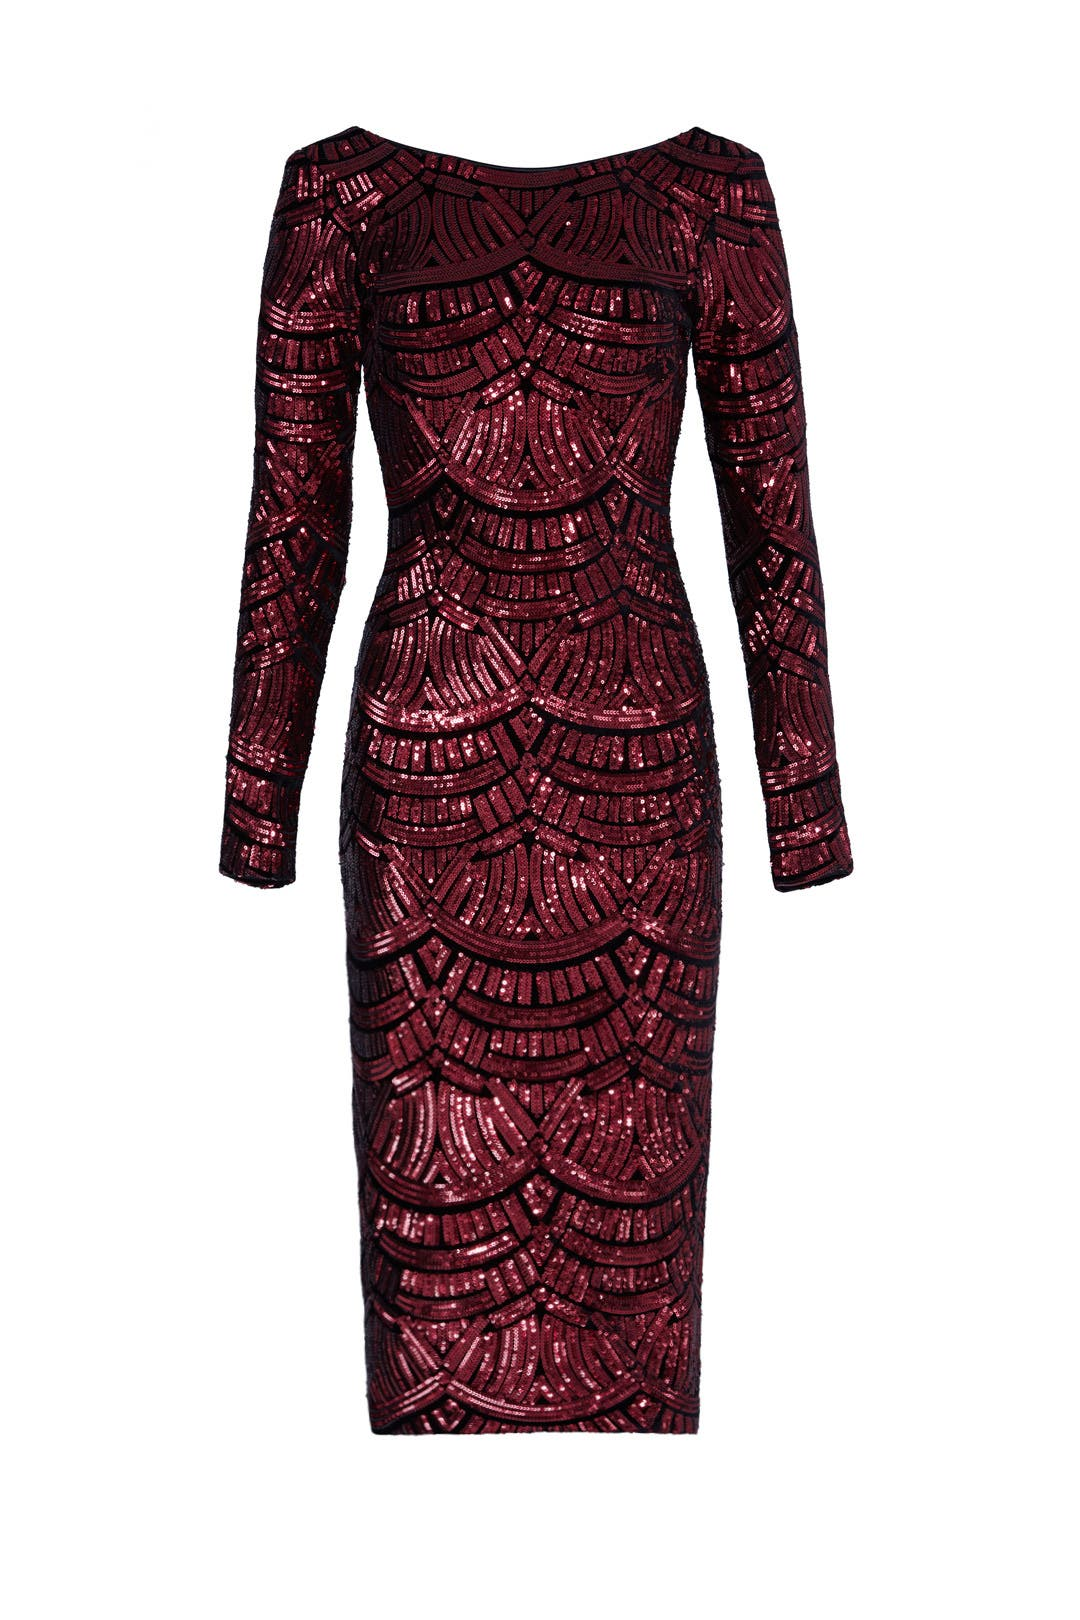 Dresses for weddings formals black tie more burgundy emery dress by dress the population ombrellifo Images